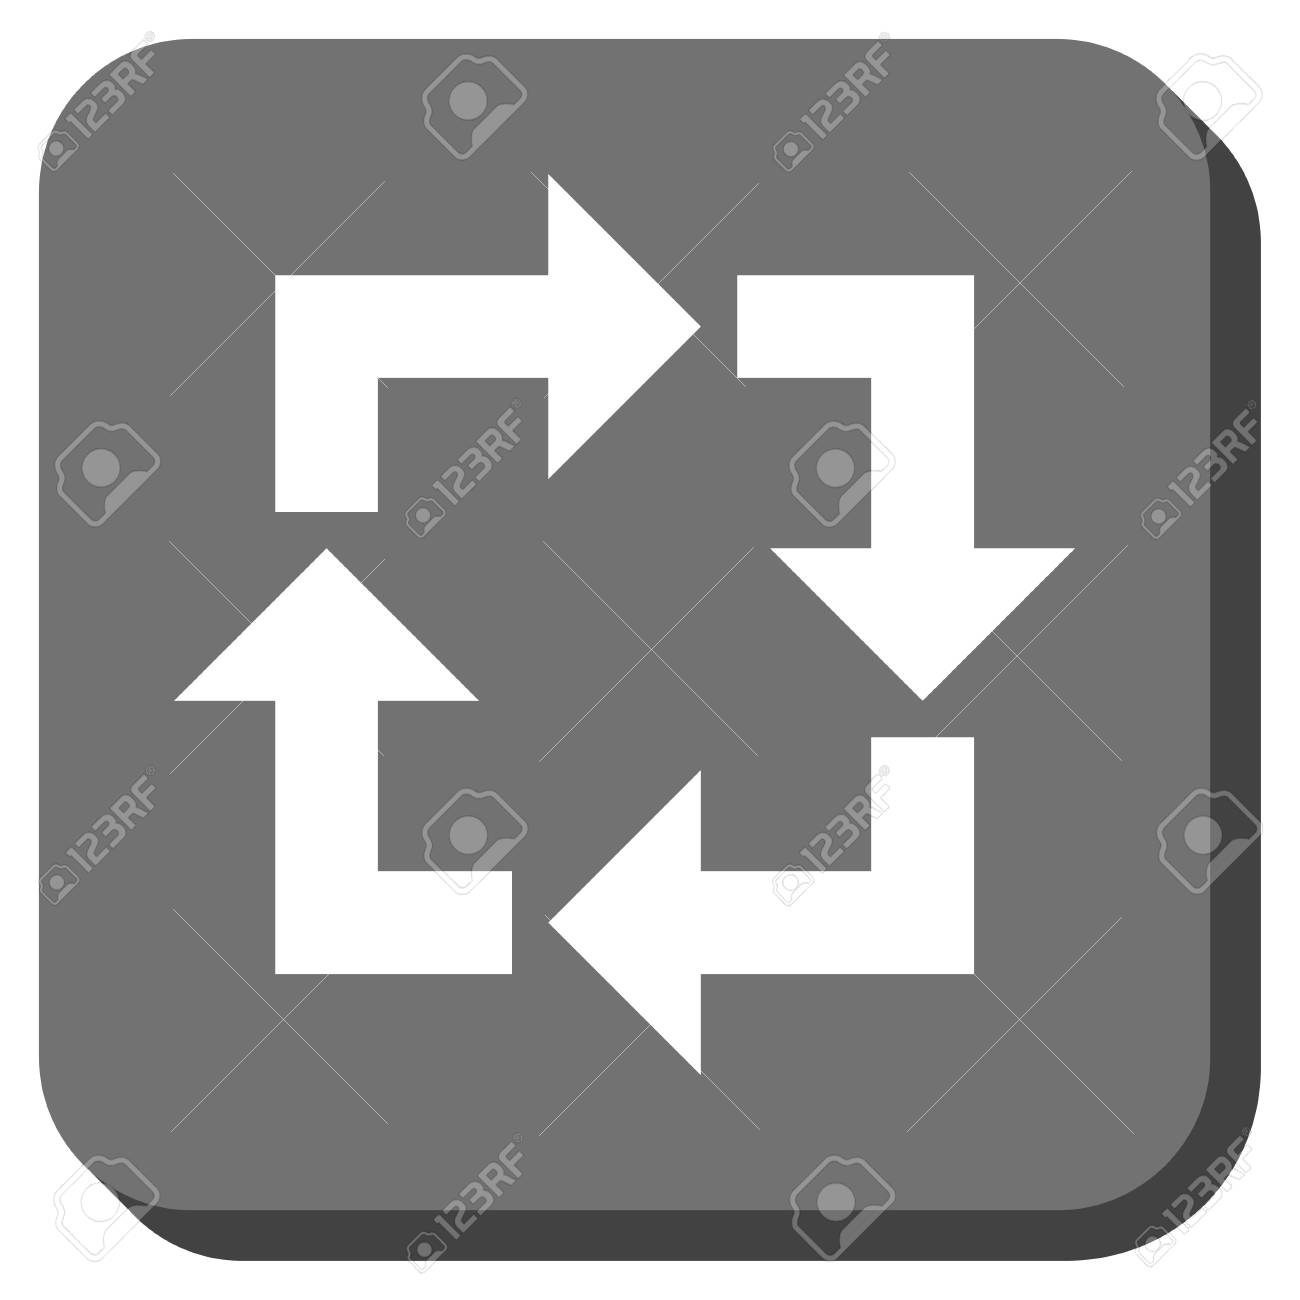 Recycle Vector Icon Image Style Is A Flat Icon Symbol Inside